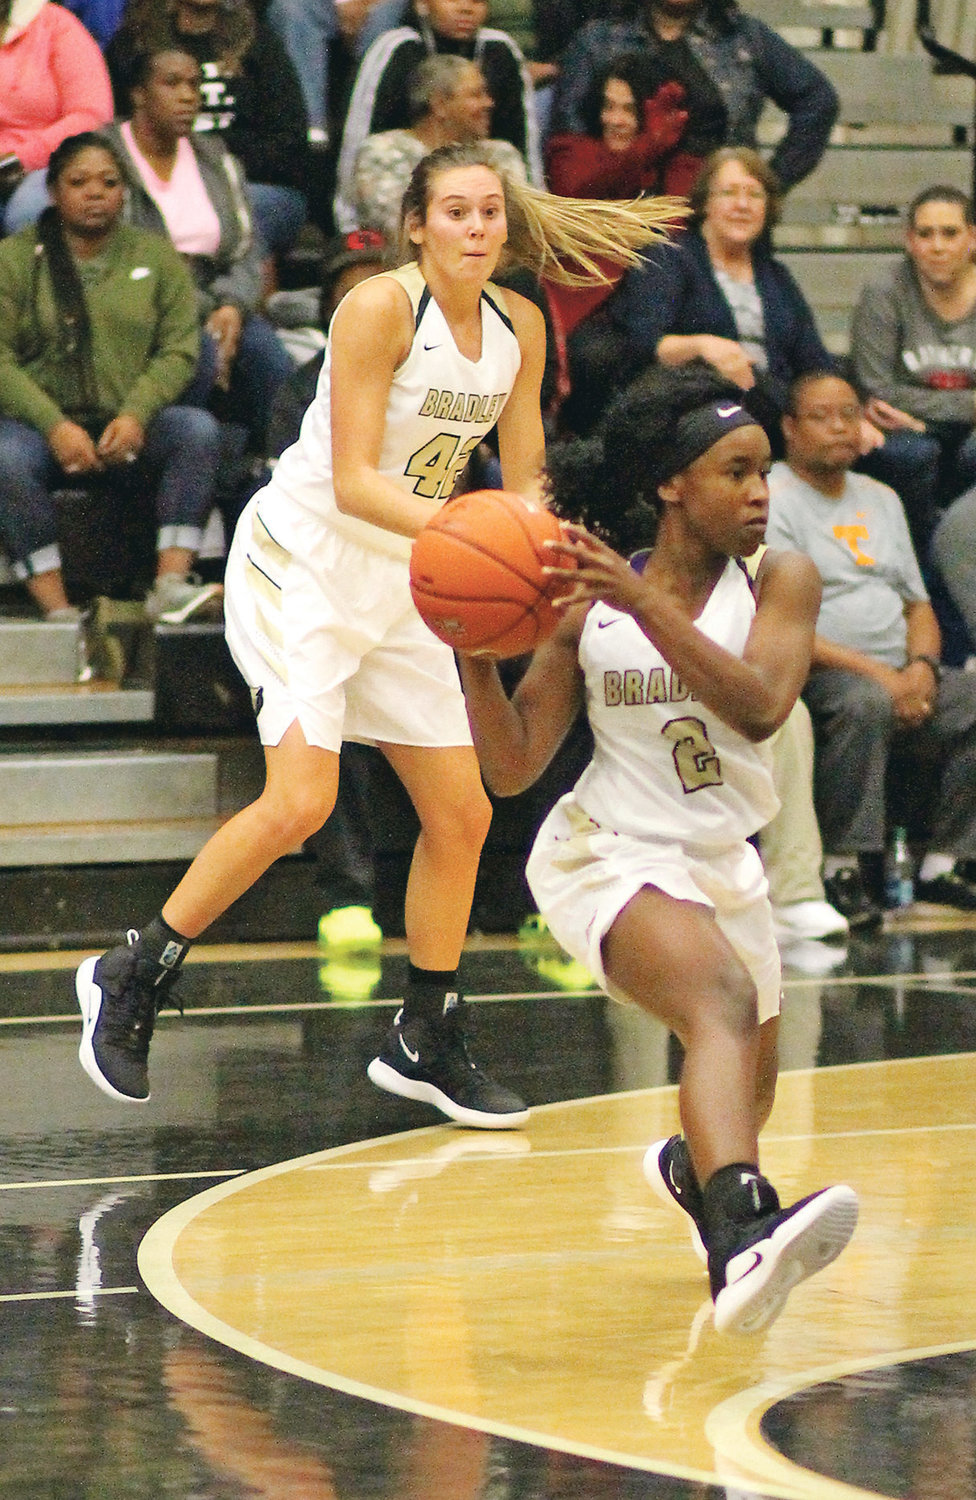 BRADLEY CENTRAL sophomore Jamia Williams (2) provided a much-needed spark off the bench, while junior Anna Walker (42) led the Bearette offense with 14 points in a 59-30 victory over fellow 2018 TSSAA Final Four participant Baylor, Tuesday evening at Jim Smiddy Arena.